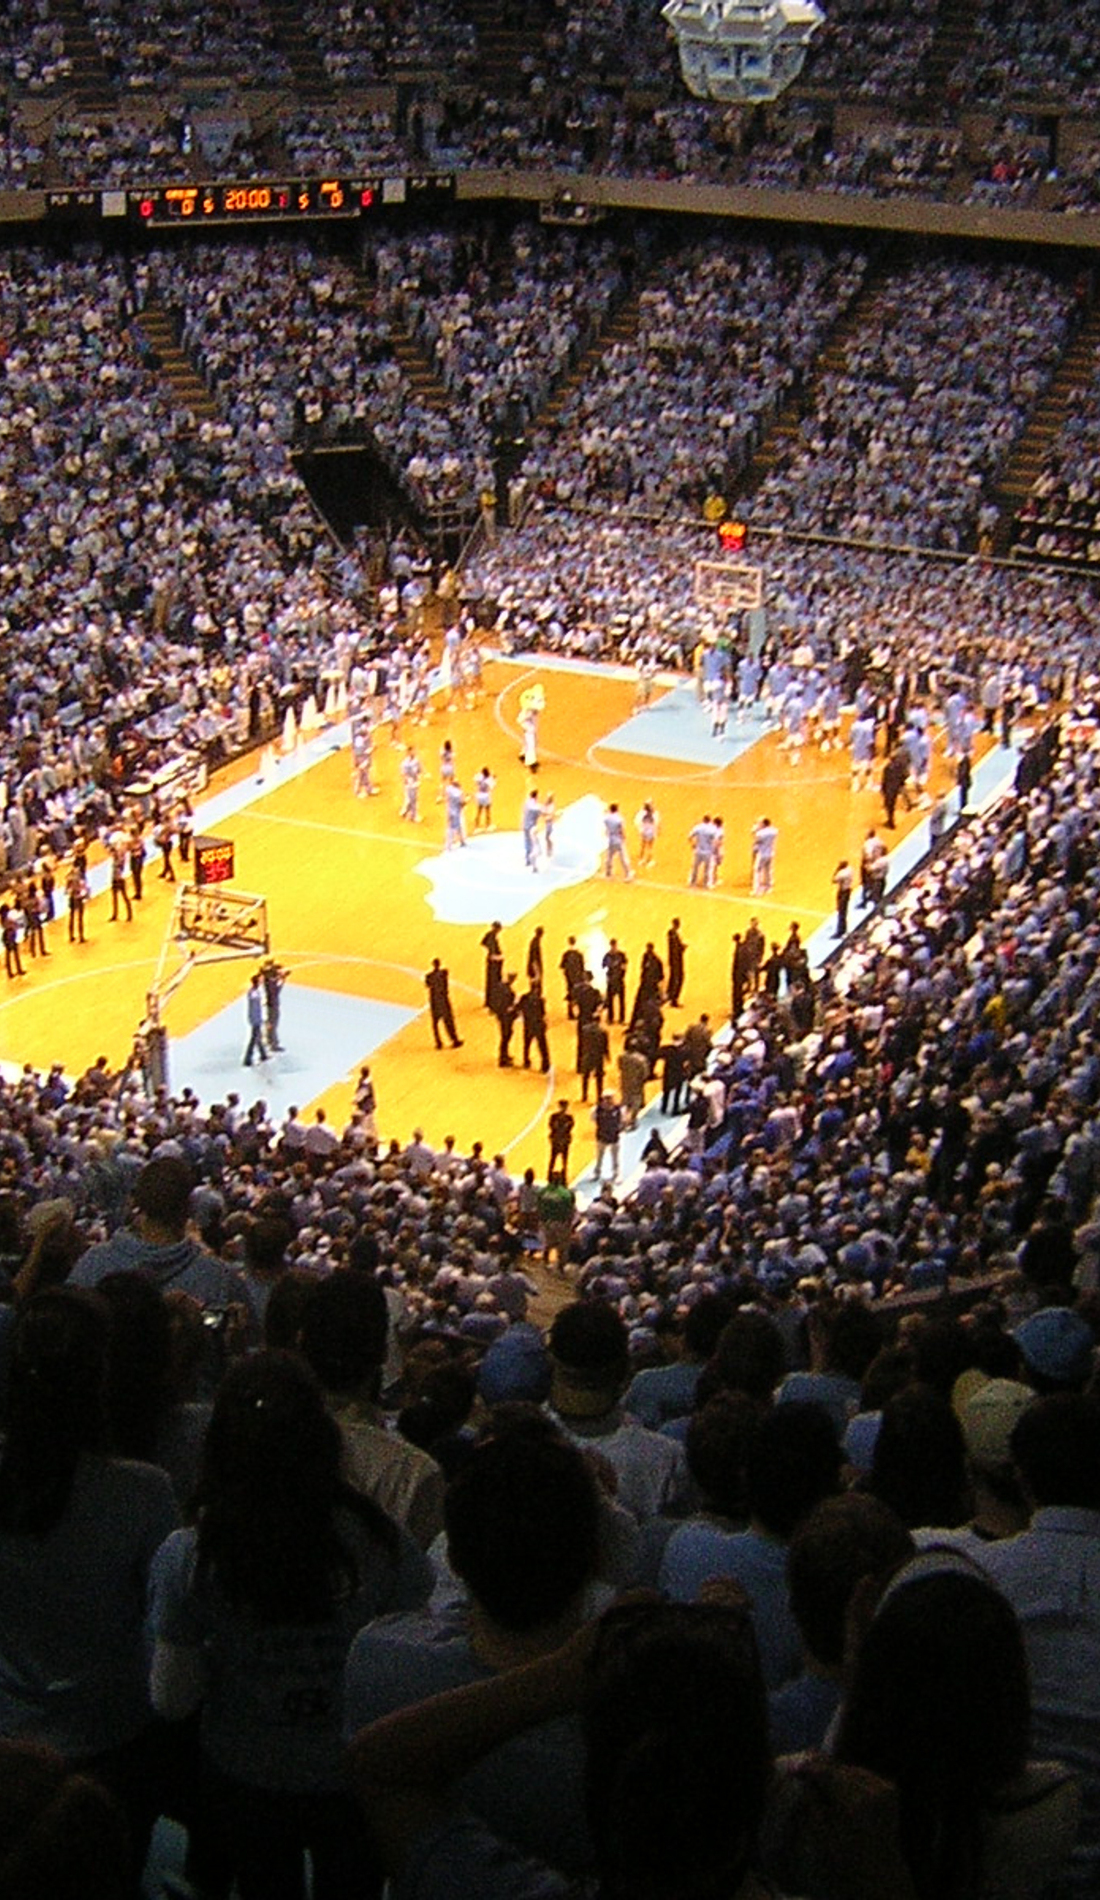 A North Carolina Tar Heels Basketball live event